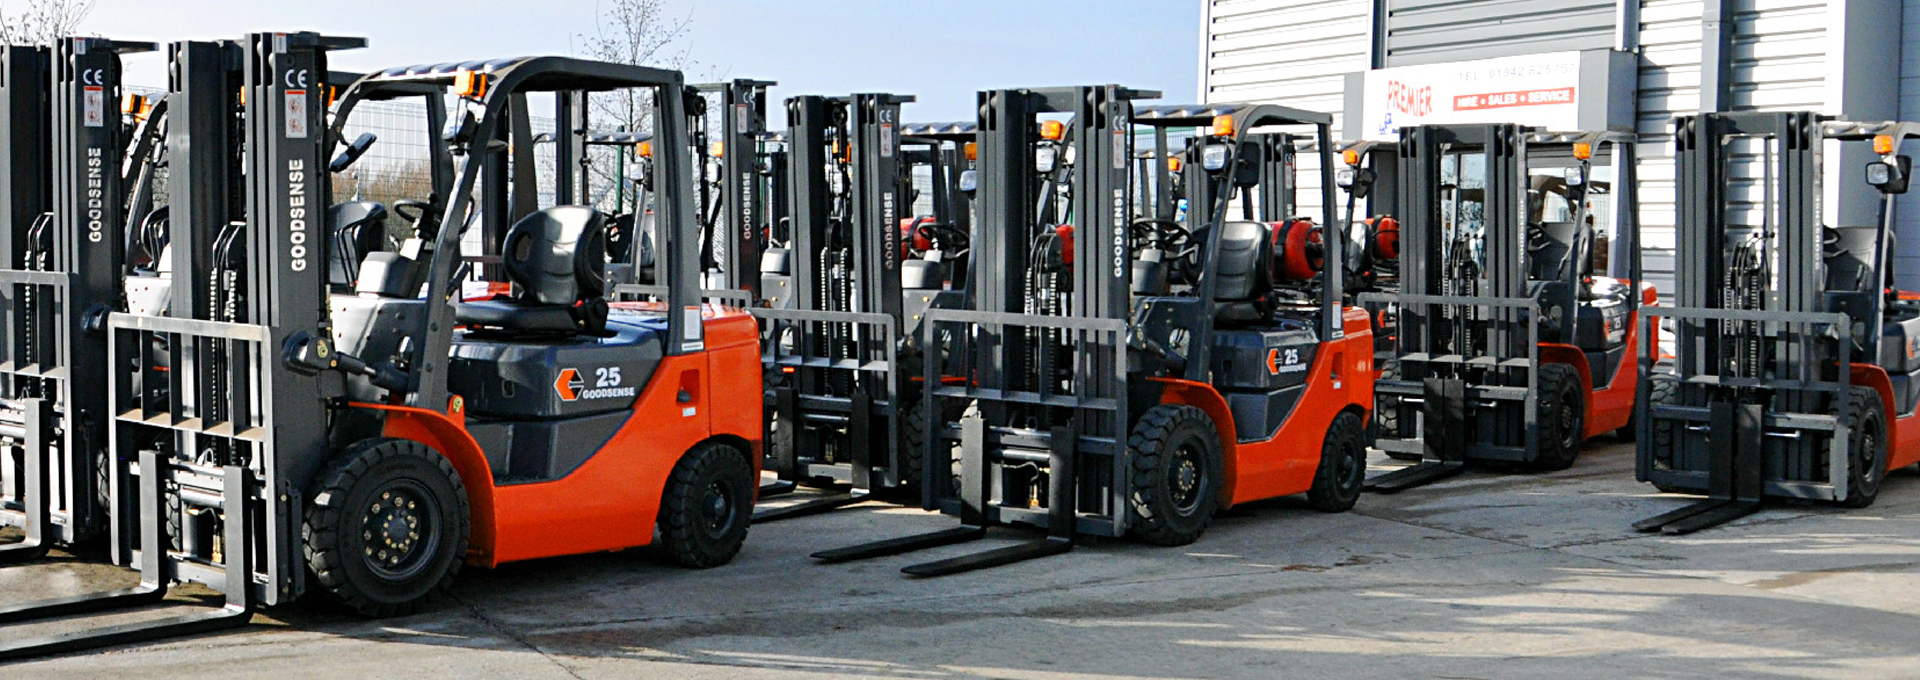 Forklift Truck Hire and Sales Manchester